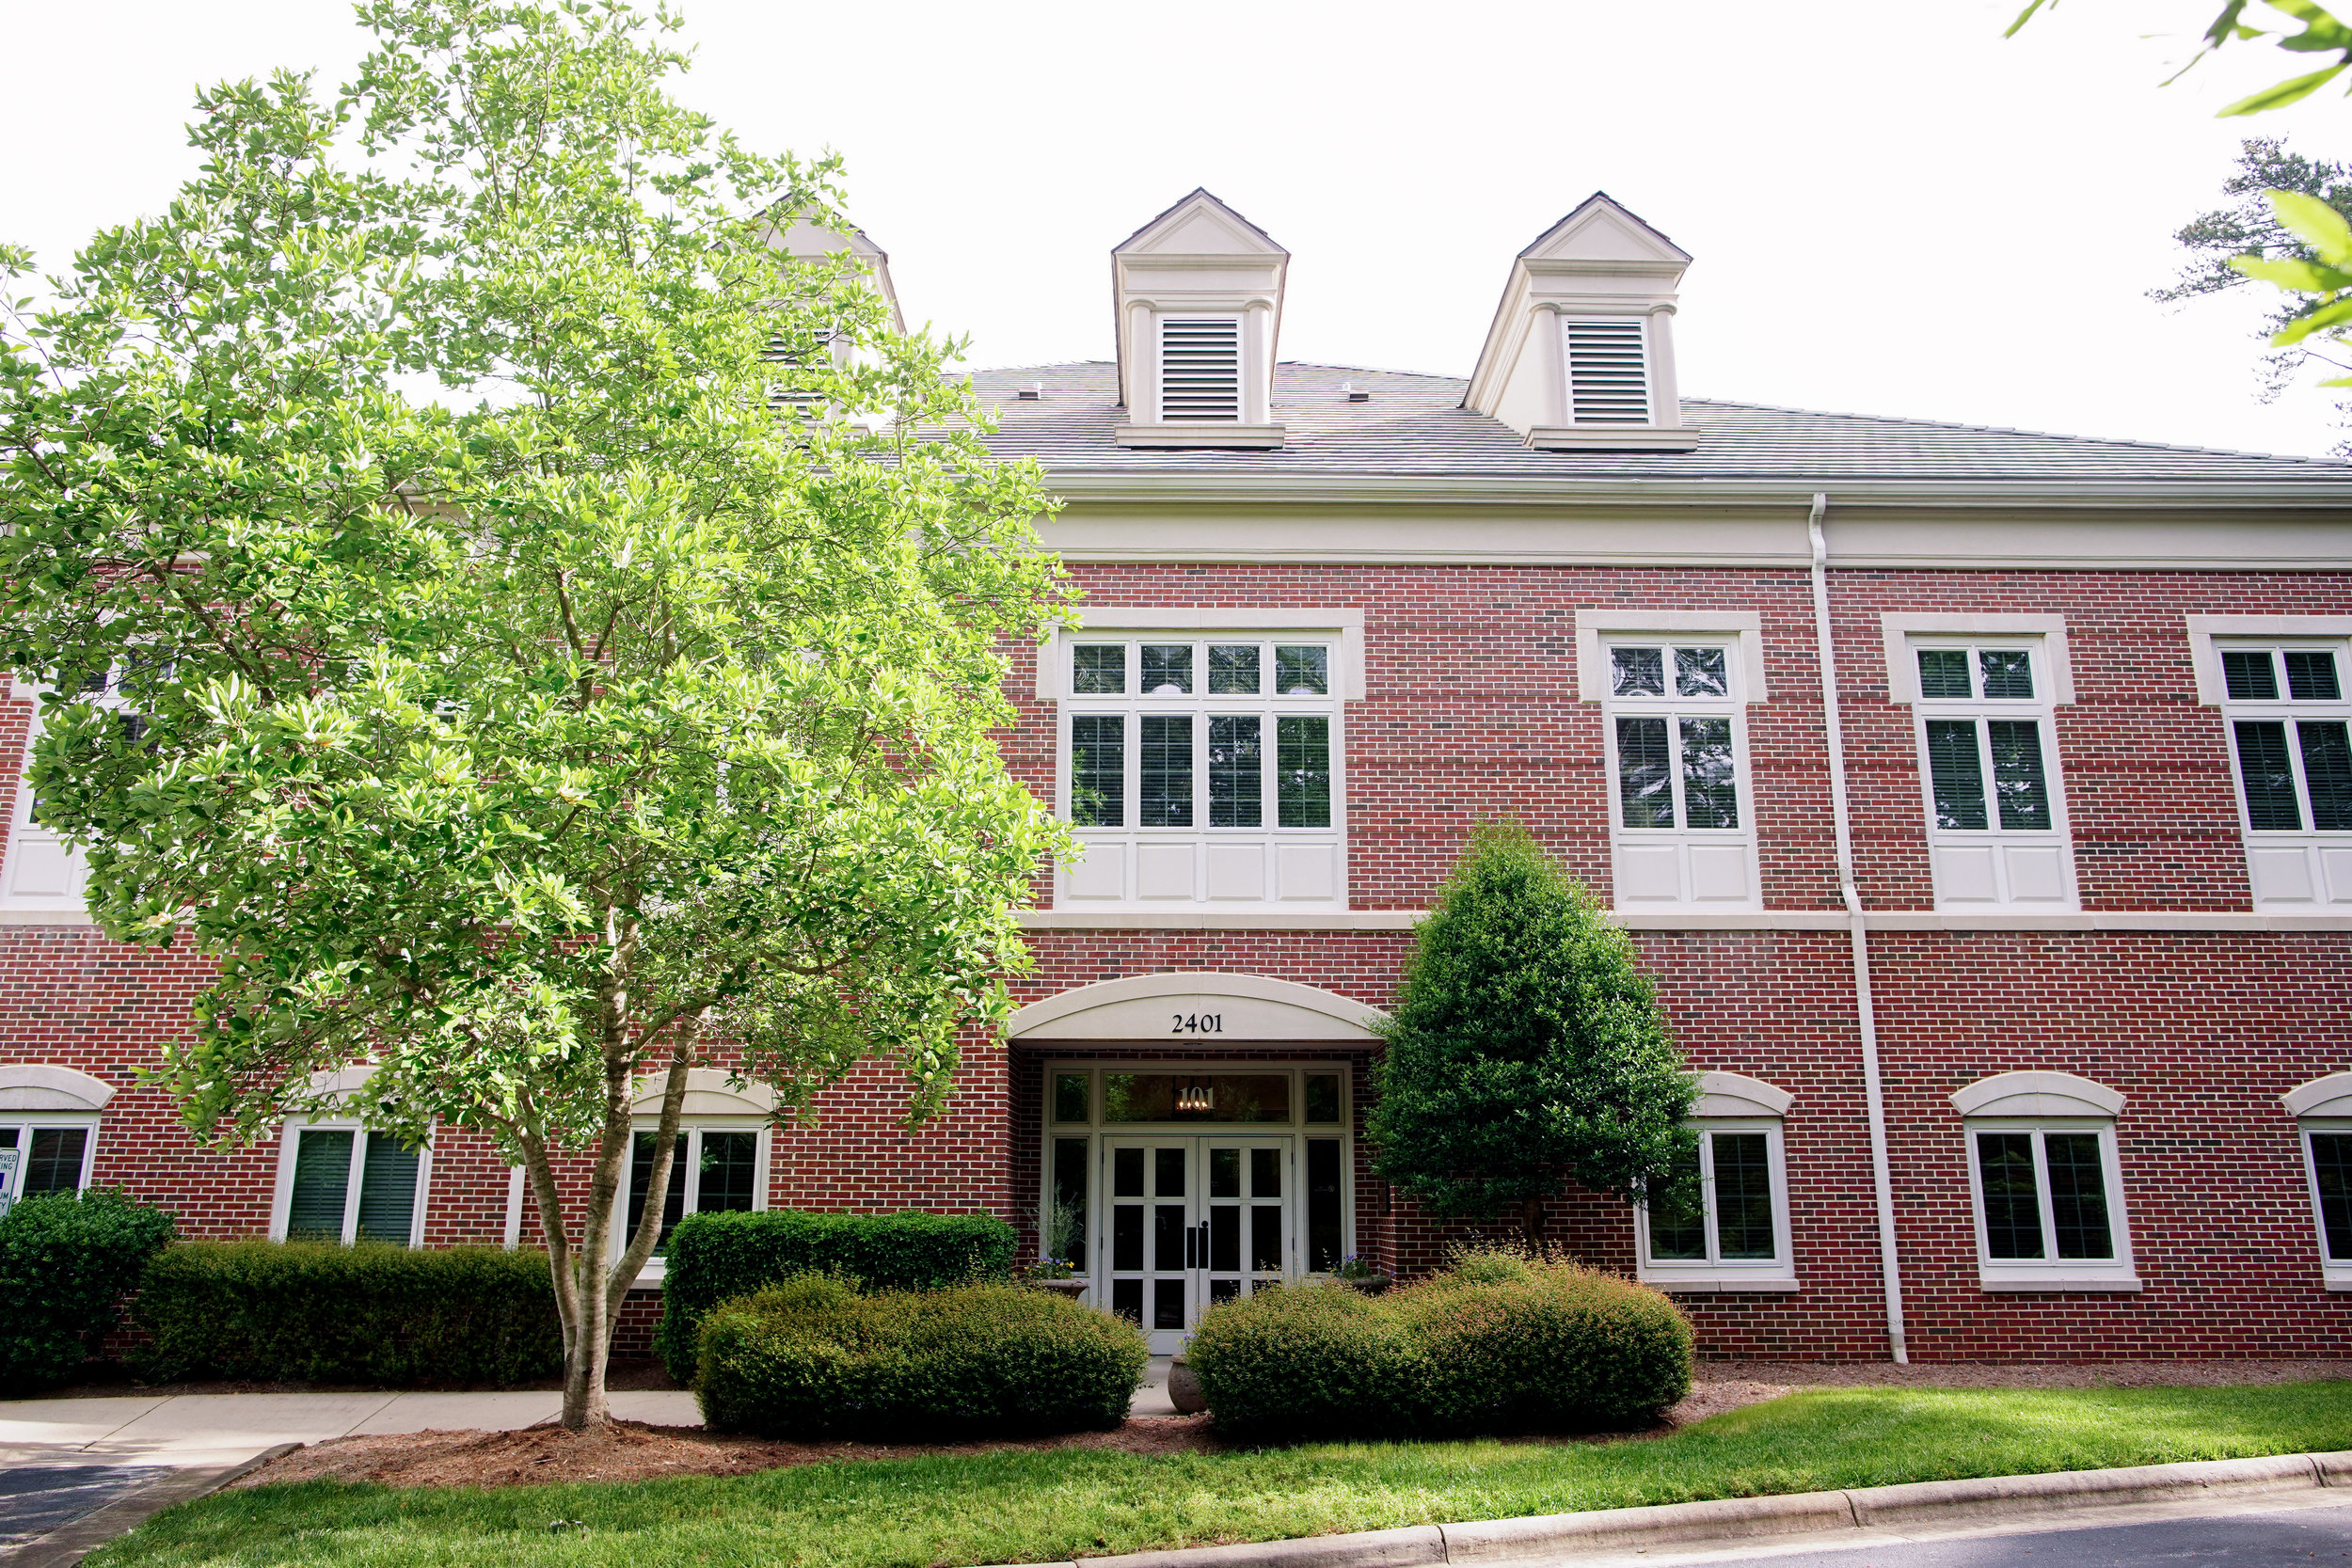 Law Firm in Cary NC 2401 Weston Parkway